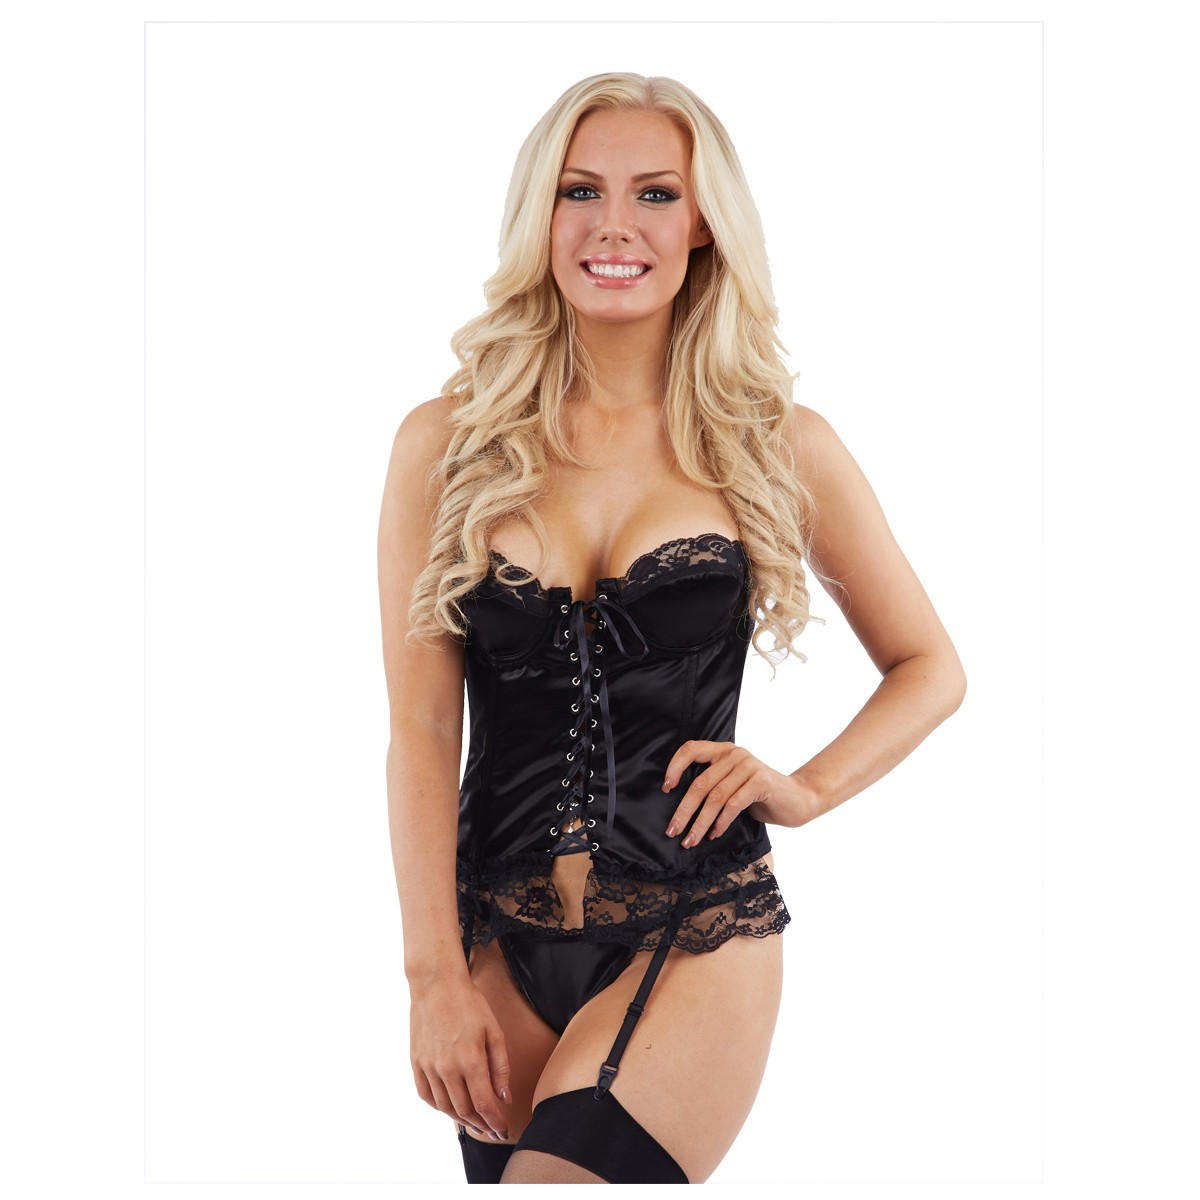 Classified Satin Basque and Thong Set - Black